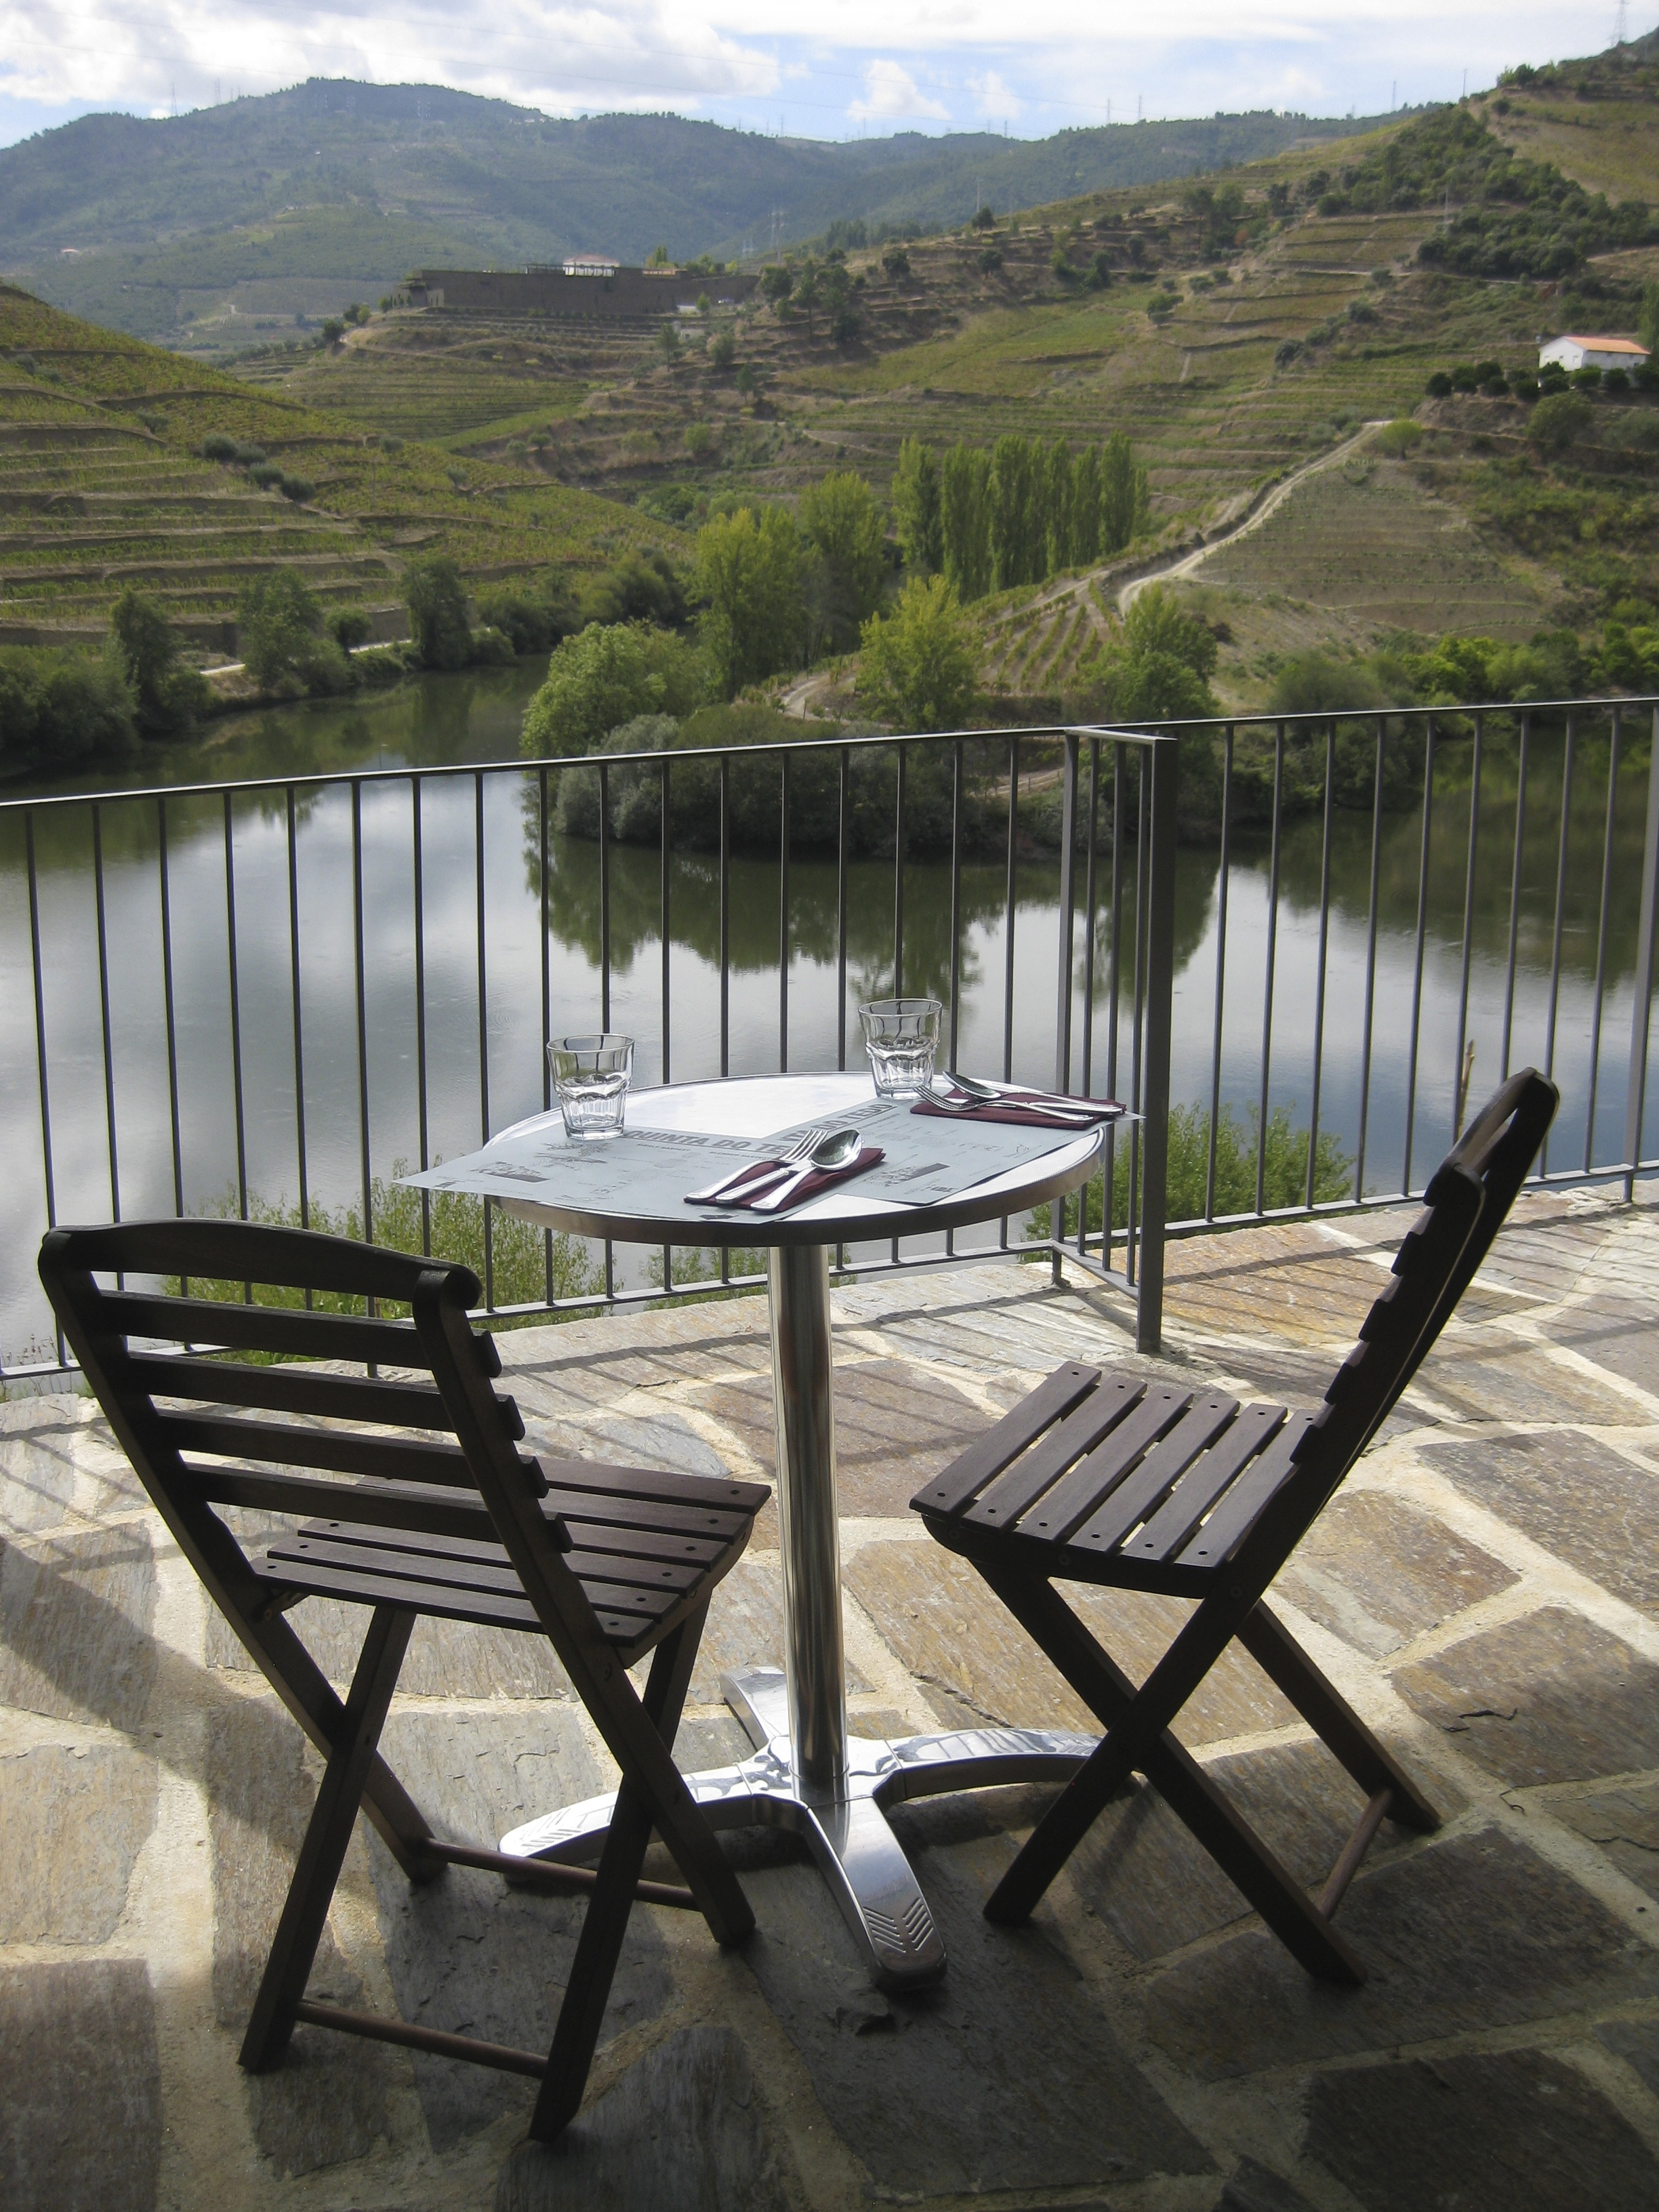 Fantastic view of Tedo while pairing food to our Porto and wine.